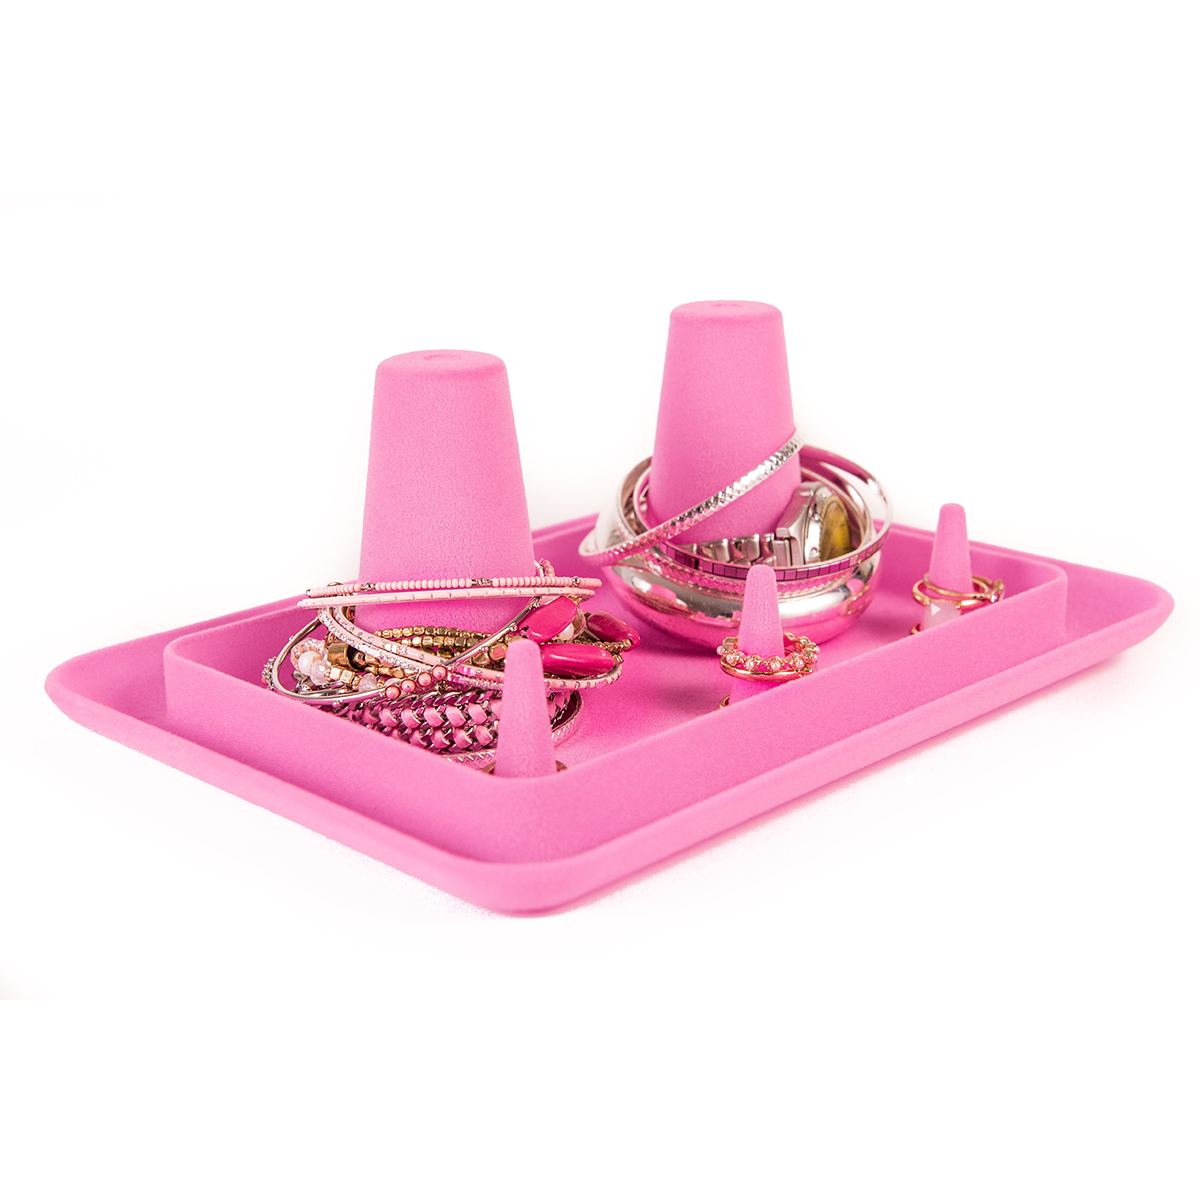 Pink Velvet Bangle Stacker Jewelry Organizing Tray